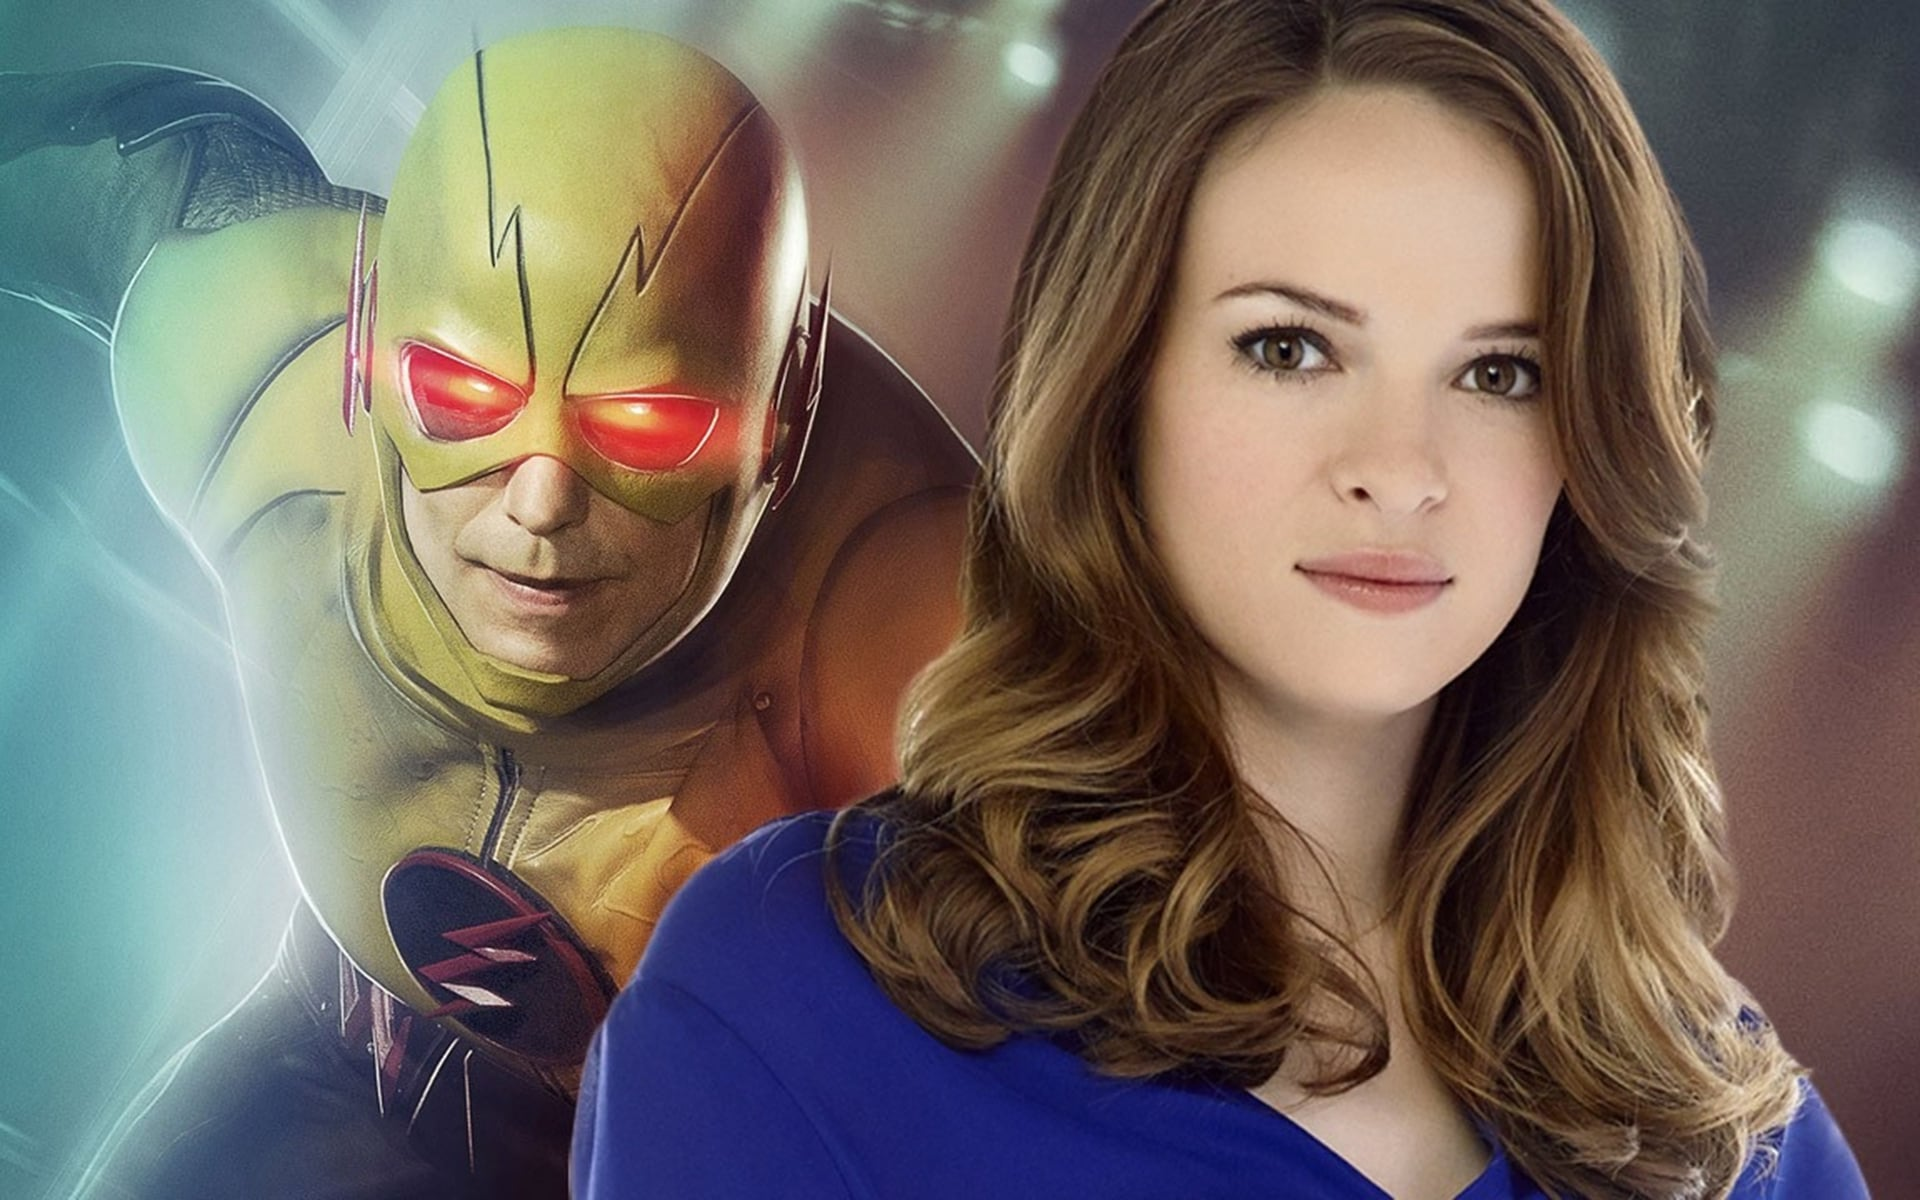 Danielle Panabaker Hd Wallpapers 17 Danielle Panabaker Wallpapers Hd Download